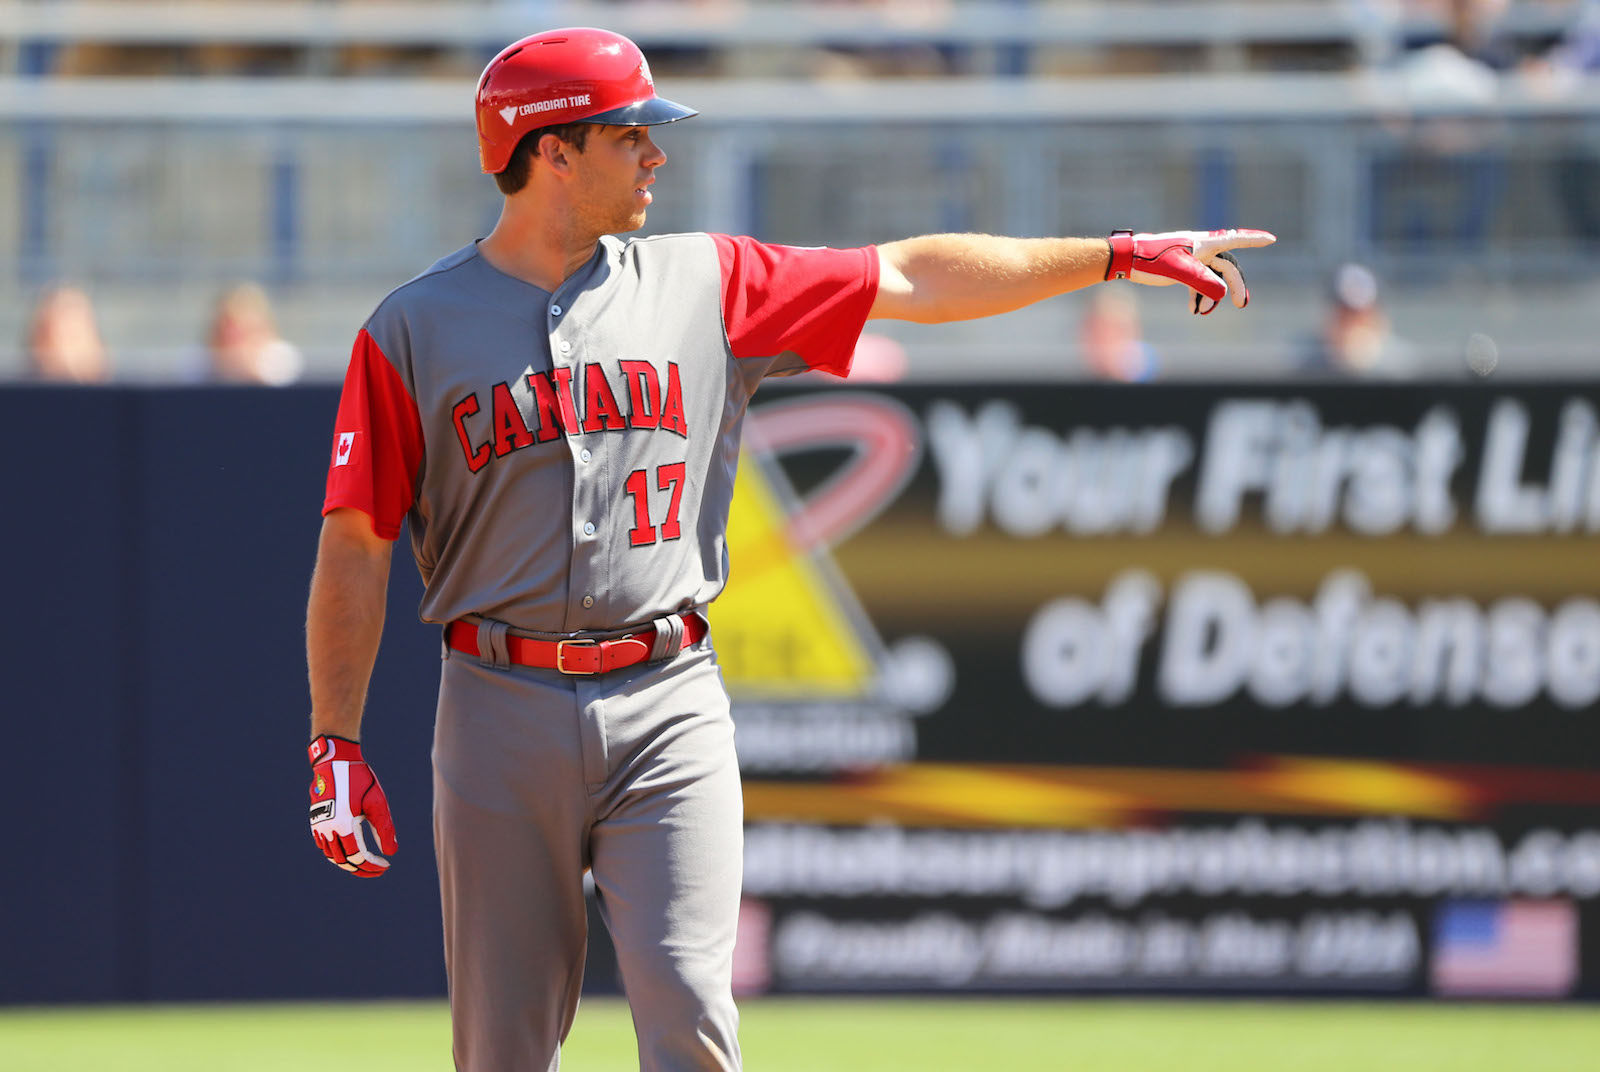 Wood homers twice as Canada falls in exhibition finale